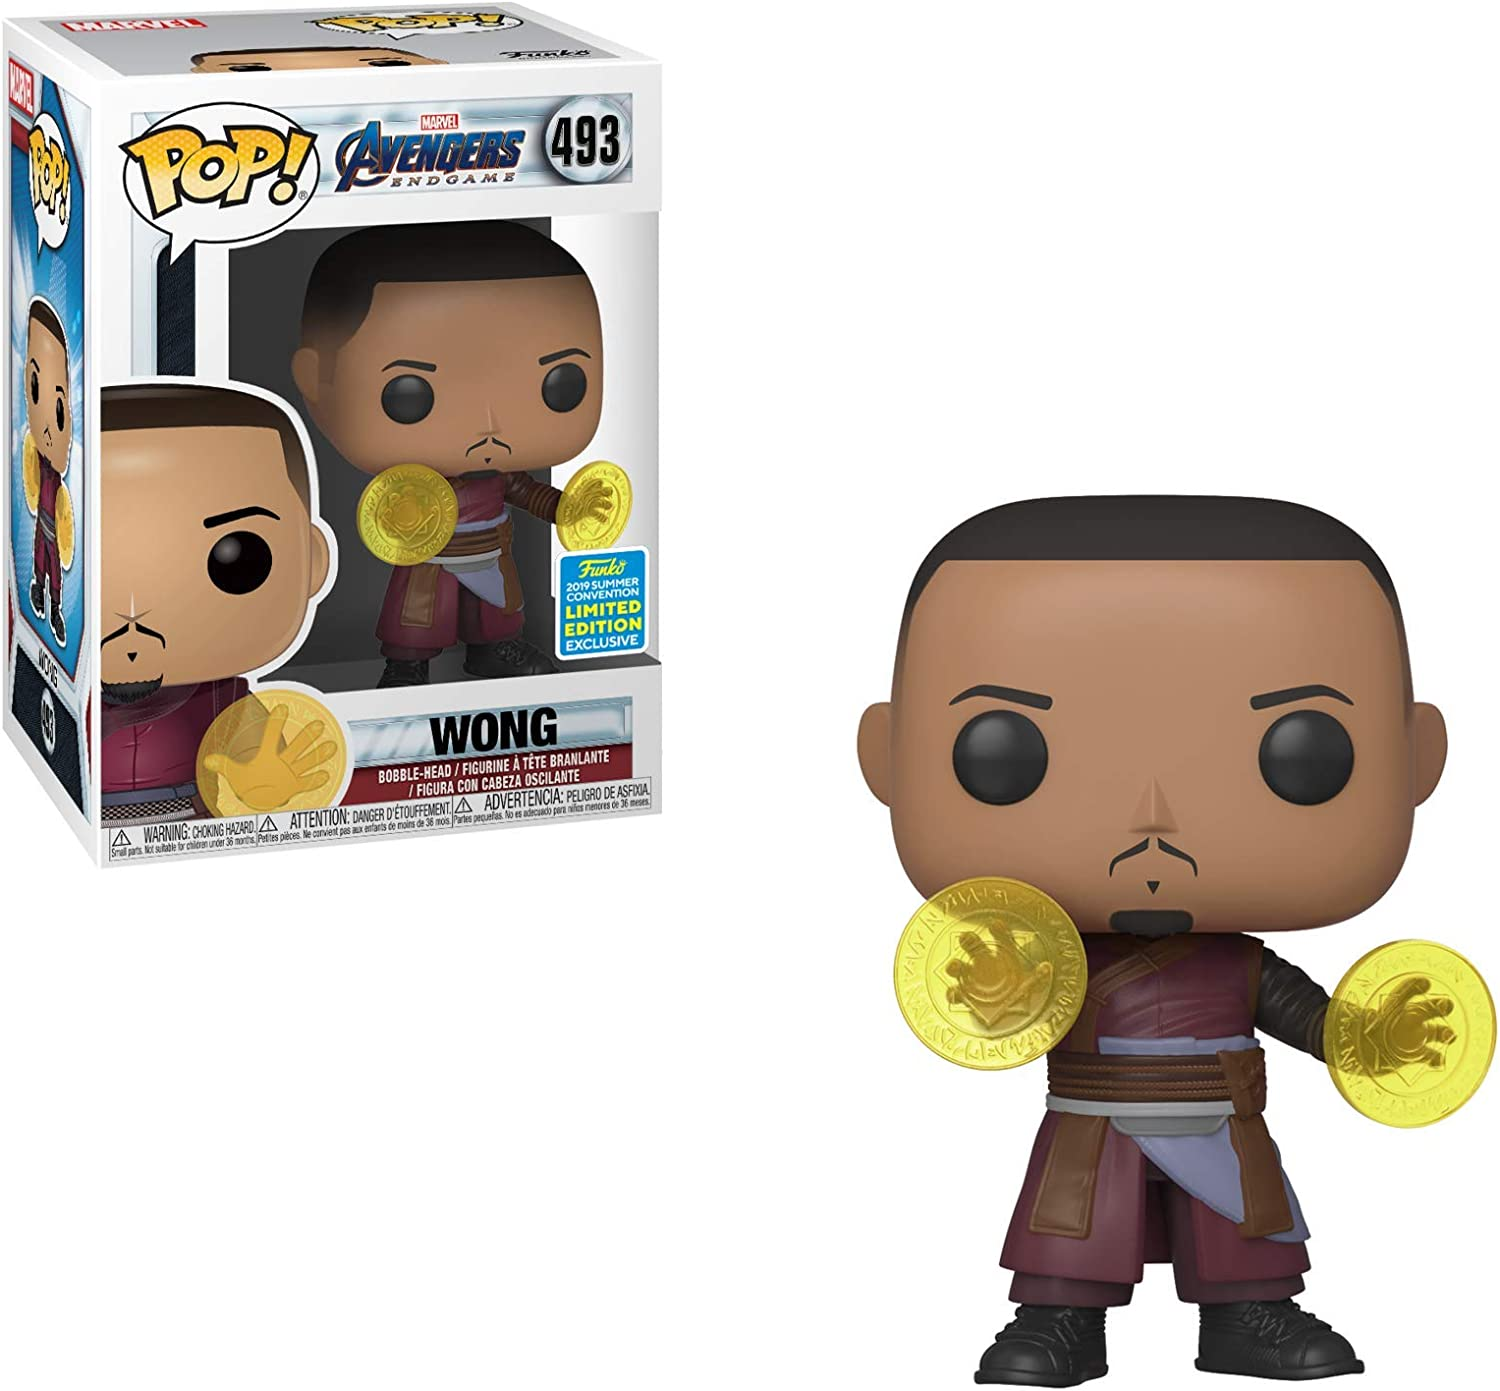 2019 SDCC Summer Convention Exclusive Limited Edition Funko POP Avengers Endgame Wong